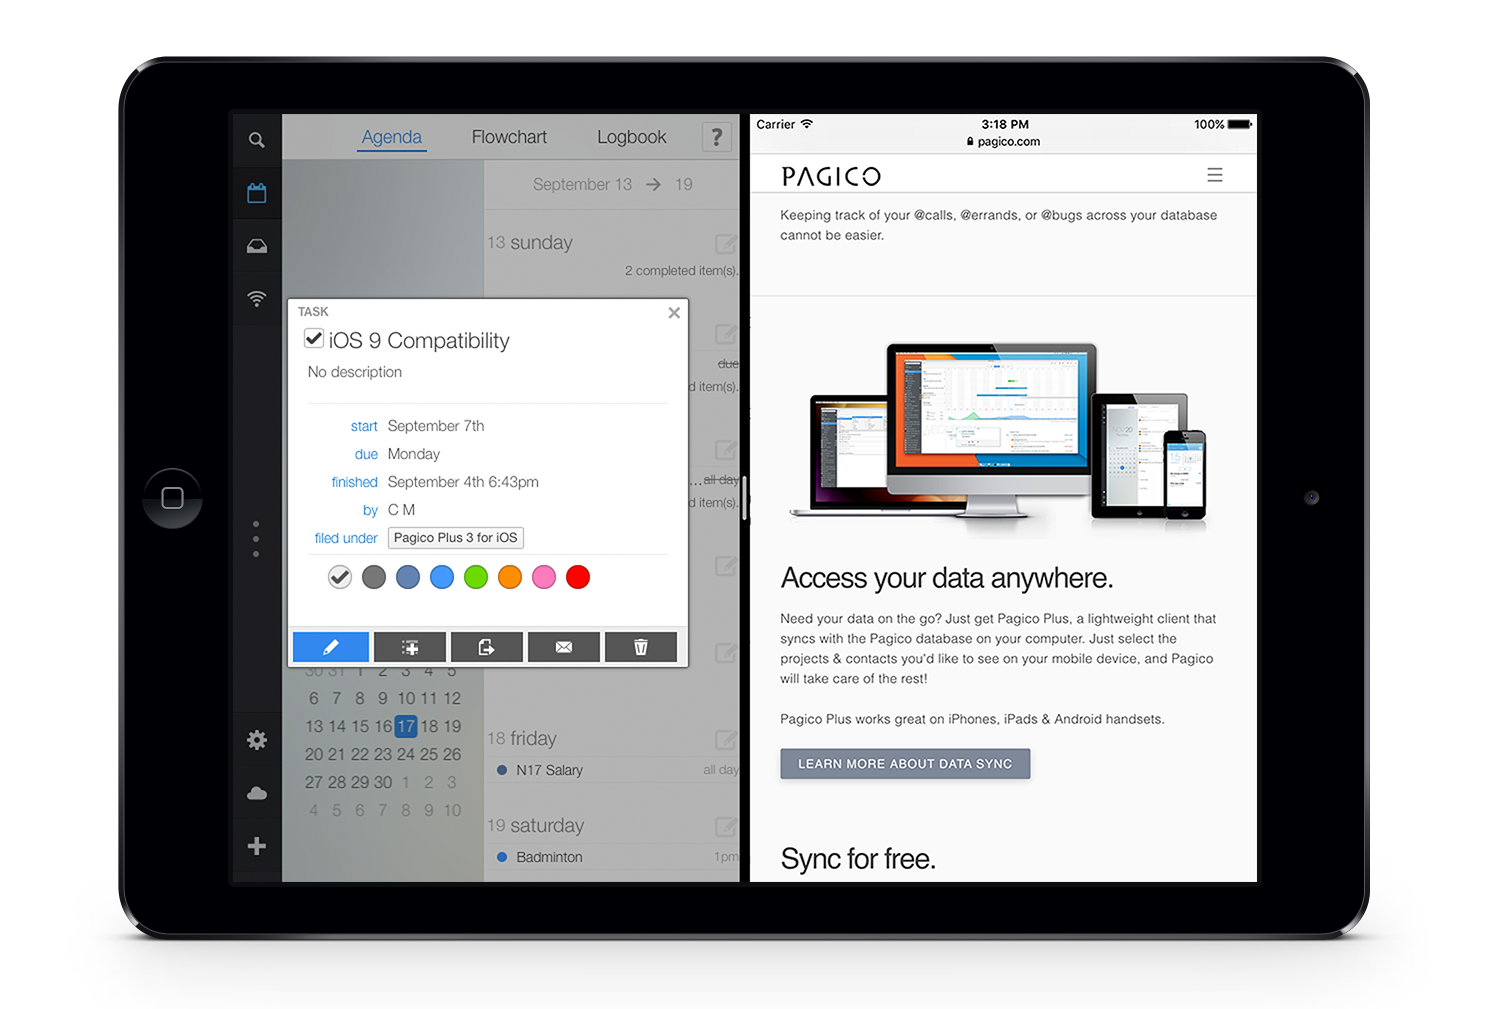 Pagico Plus 3 for iPad in Split View Mode